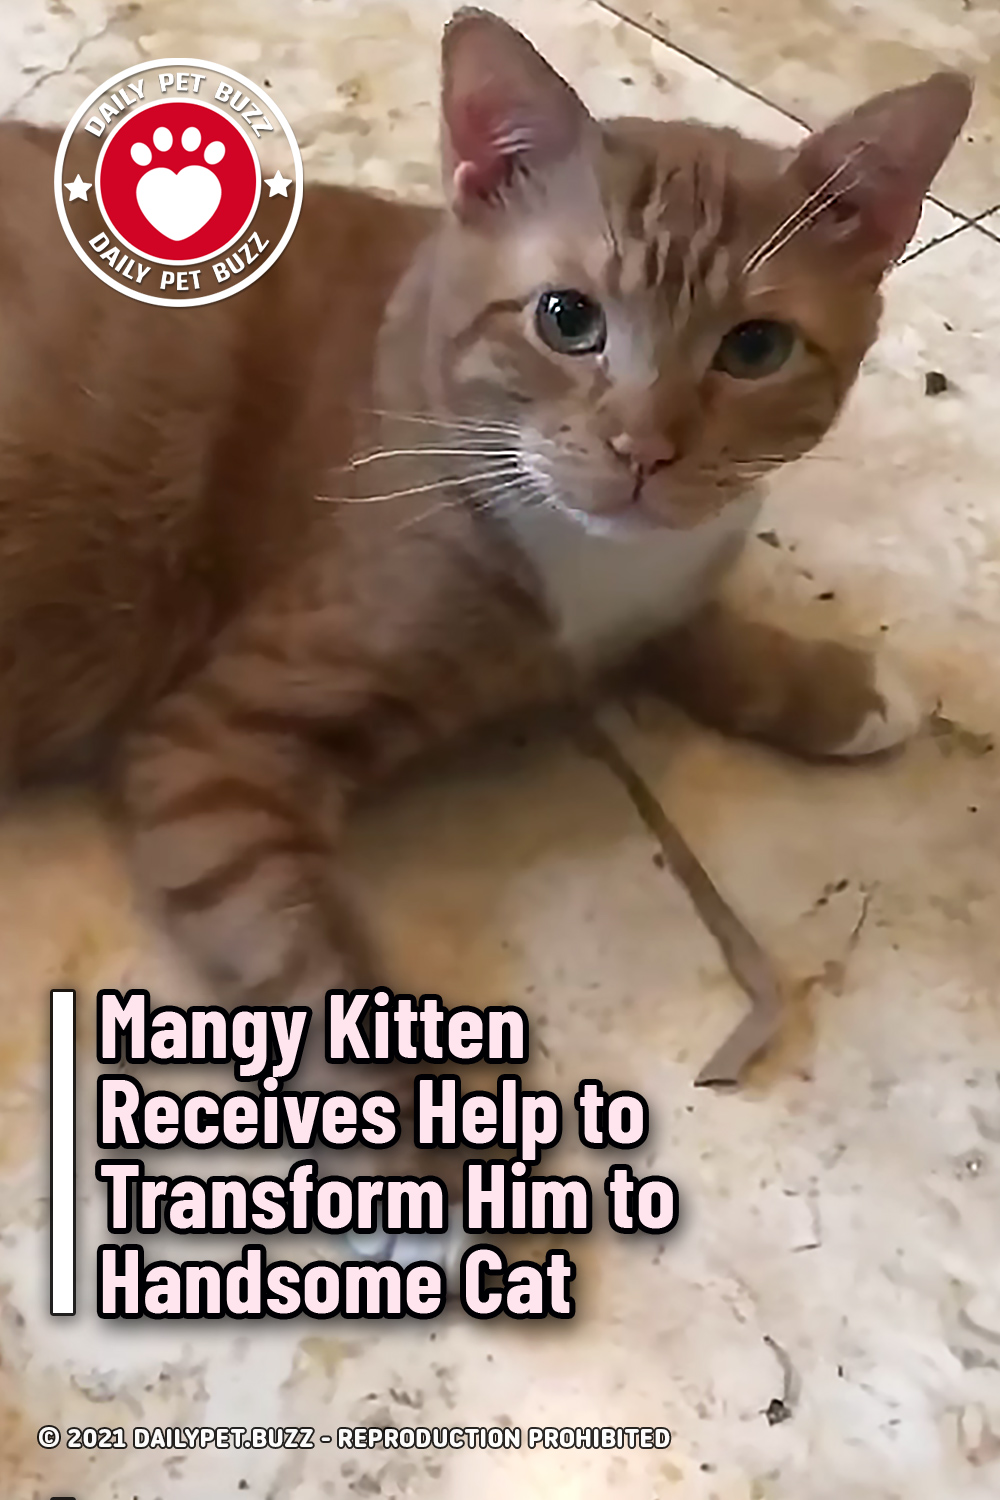 Mangy Kitten Receives Help to Transform Him to Handsome Cat